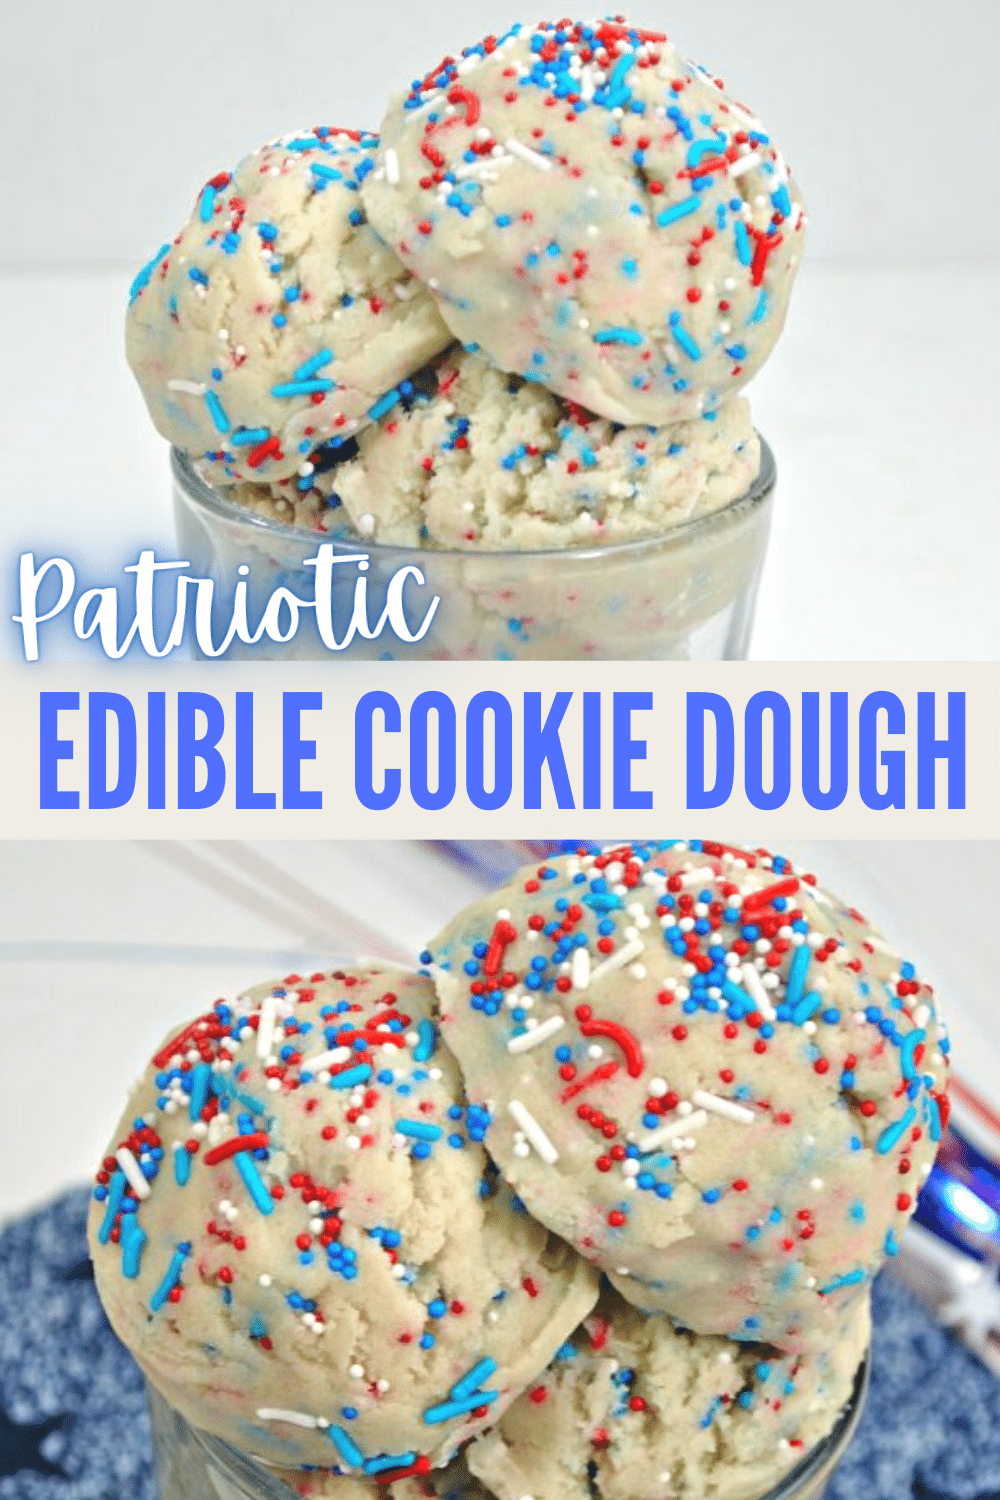 This Patriotic Edible Cookie Dough Recipe is simple to make and safe to eat! Perfect for those patriotic holidays like Memorial Day or 4th of July. #cookiedough #4thofJuly #patriotic via @wondermomwannab